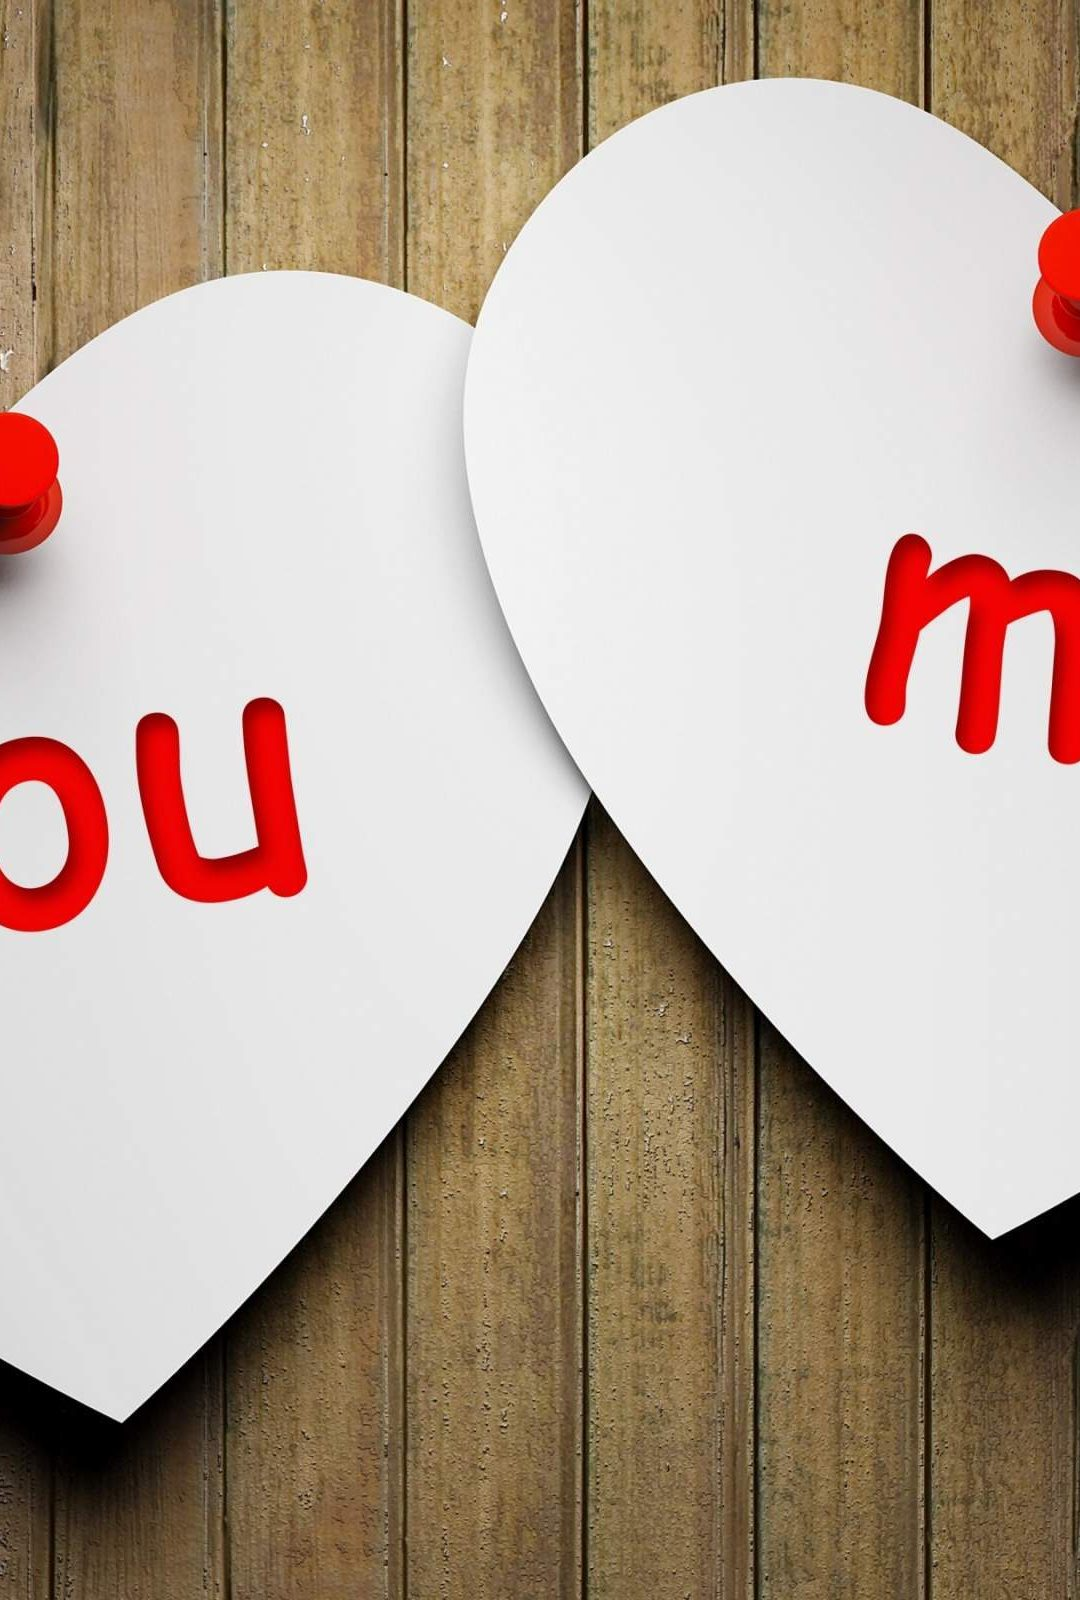 You And Me Wallpaper - Background Full Hd Love , HD Wallpaper & Backgrounds